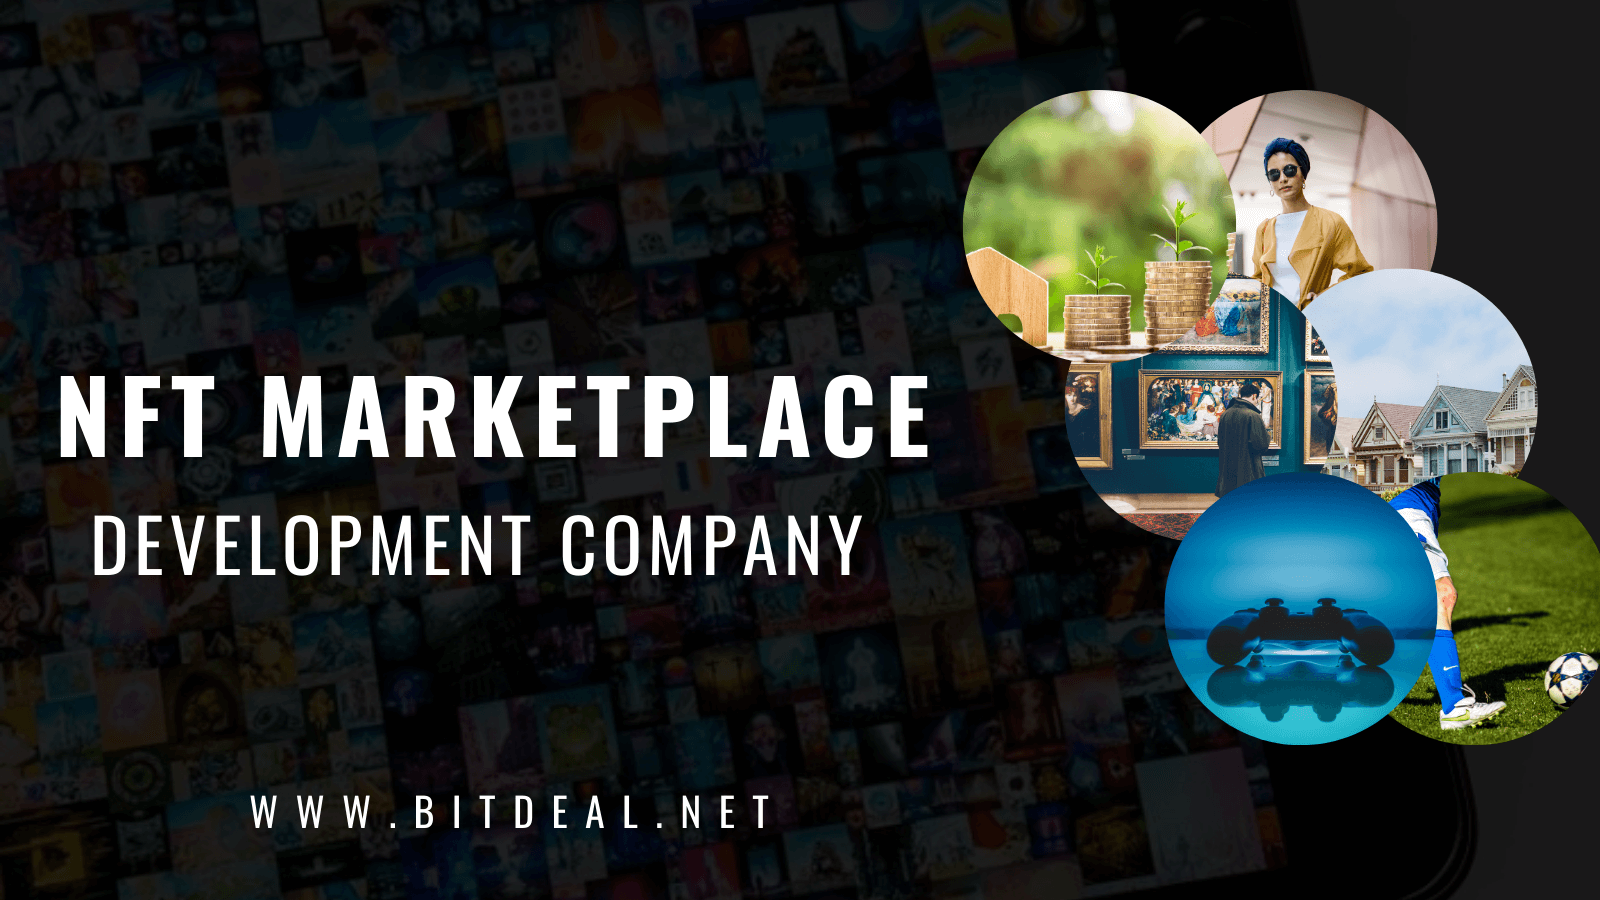 How does NFT Marketplace affects crypto market?